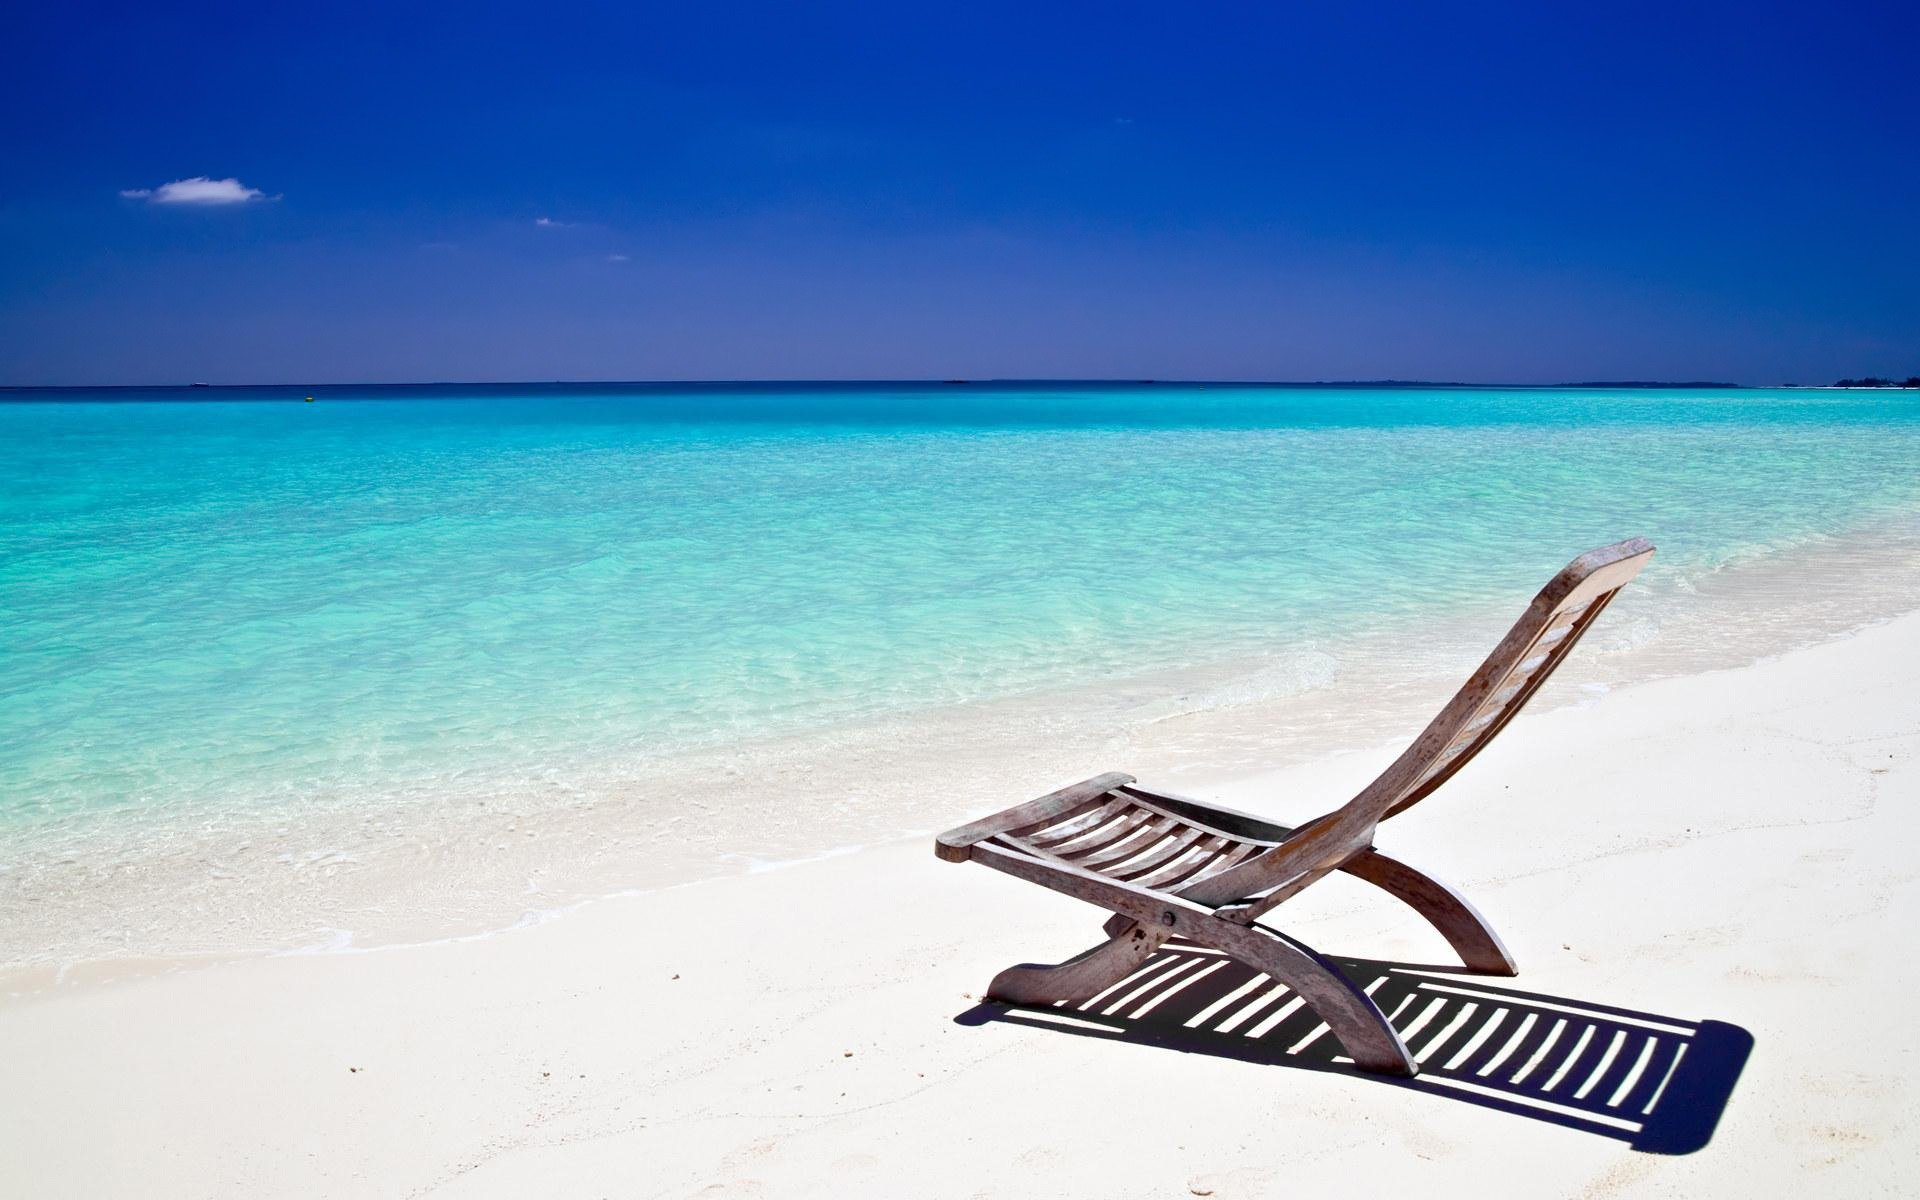 Spacious Beach Chairs For Heavy People with image lifesessentials 1920x1200